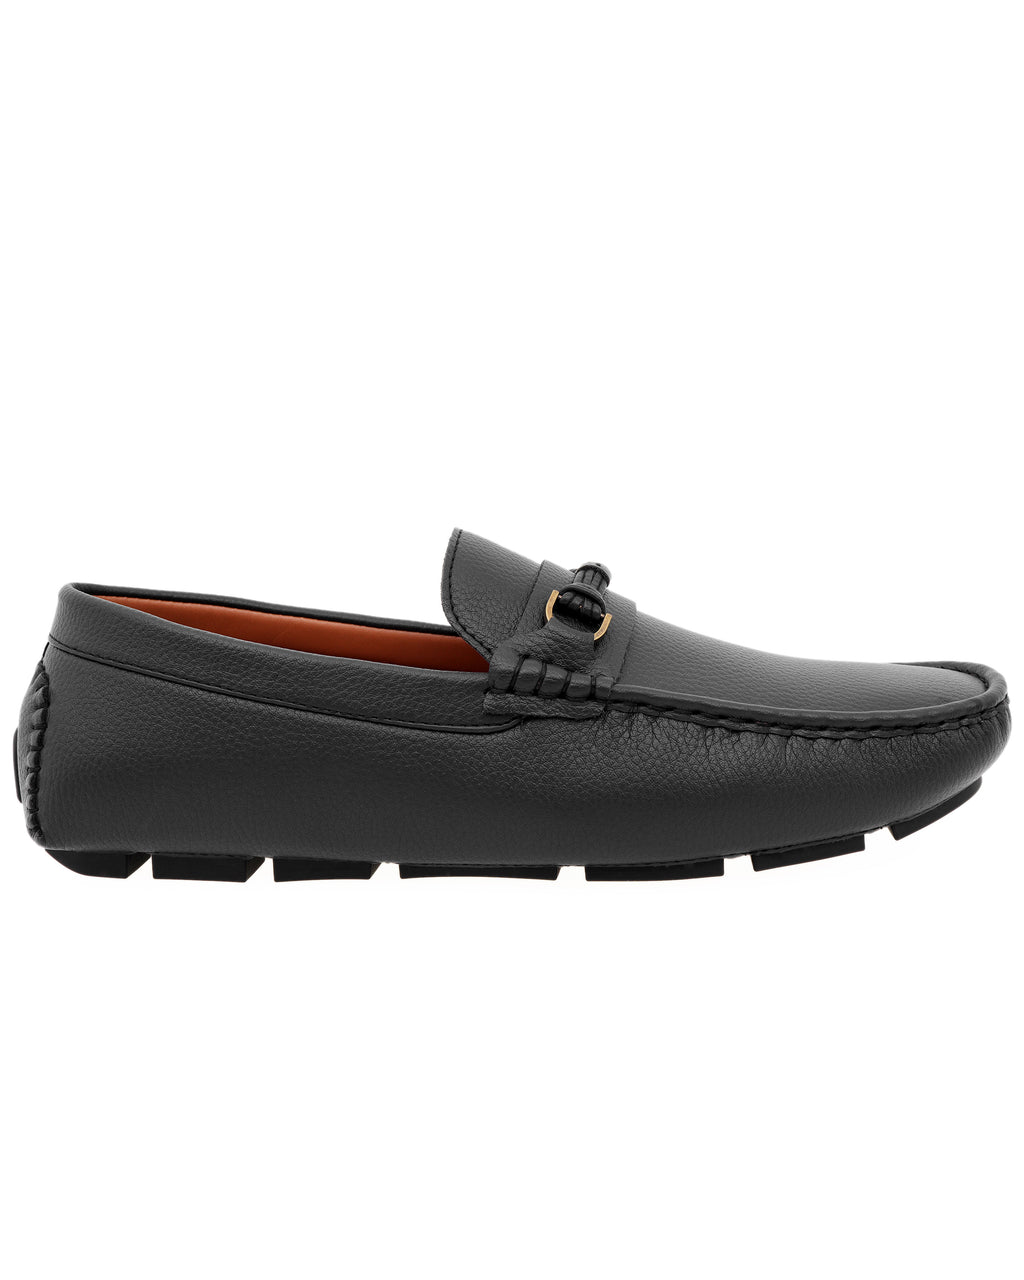 Tomaz C475 Buckle Leather Strap Moccasins (Black)